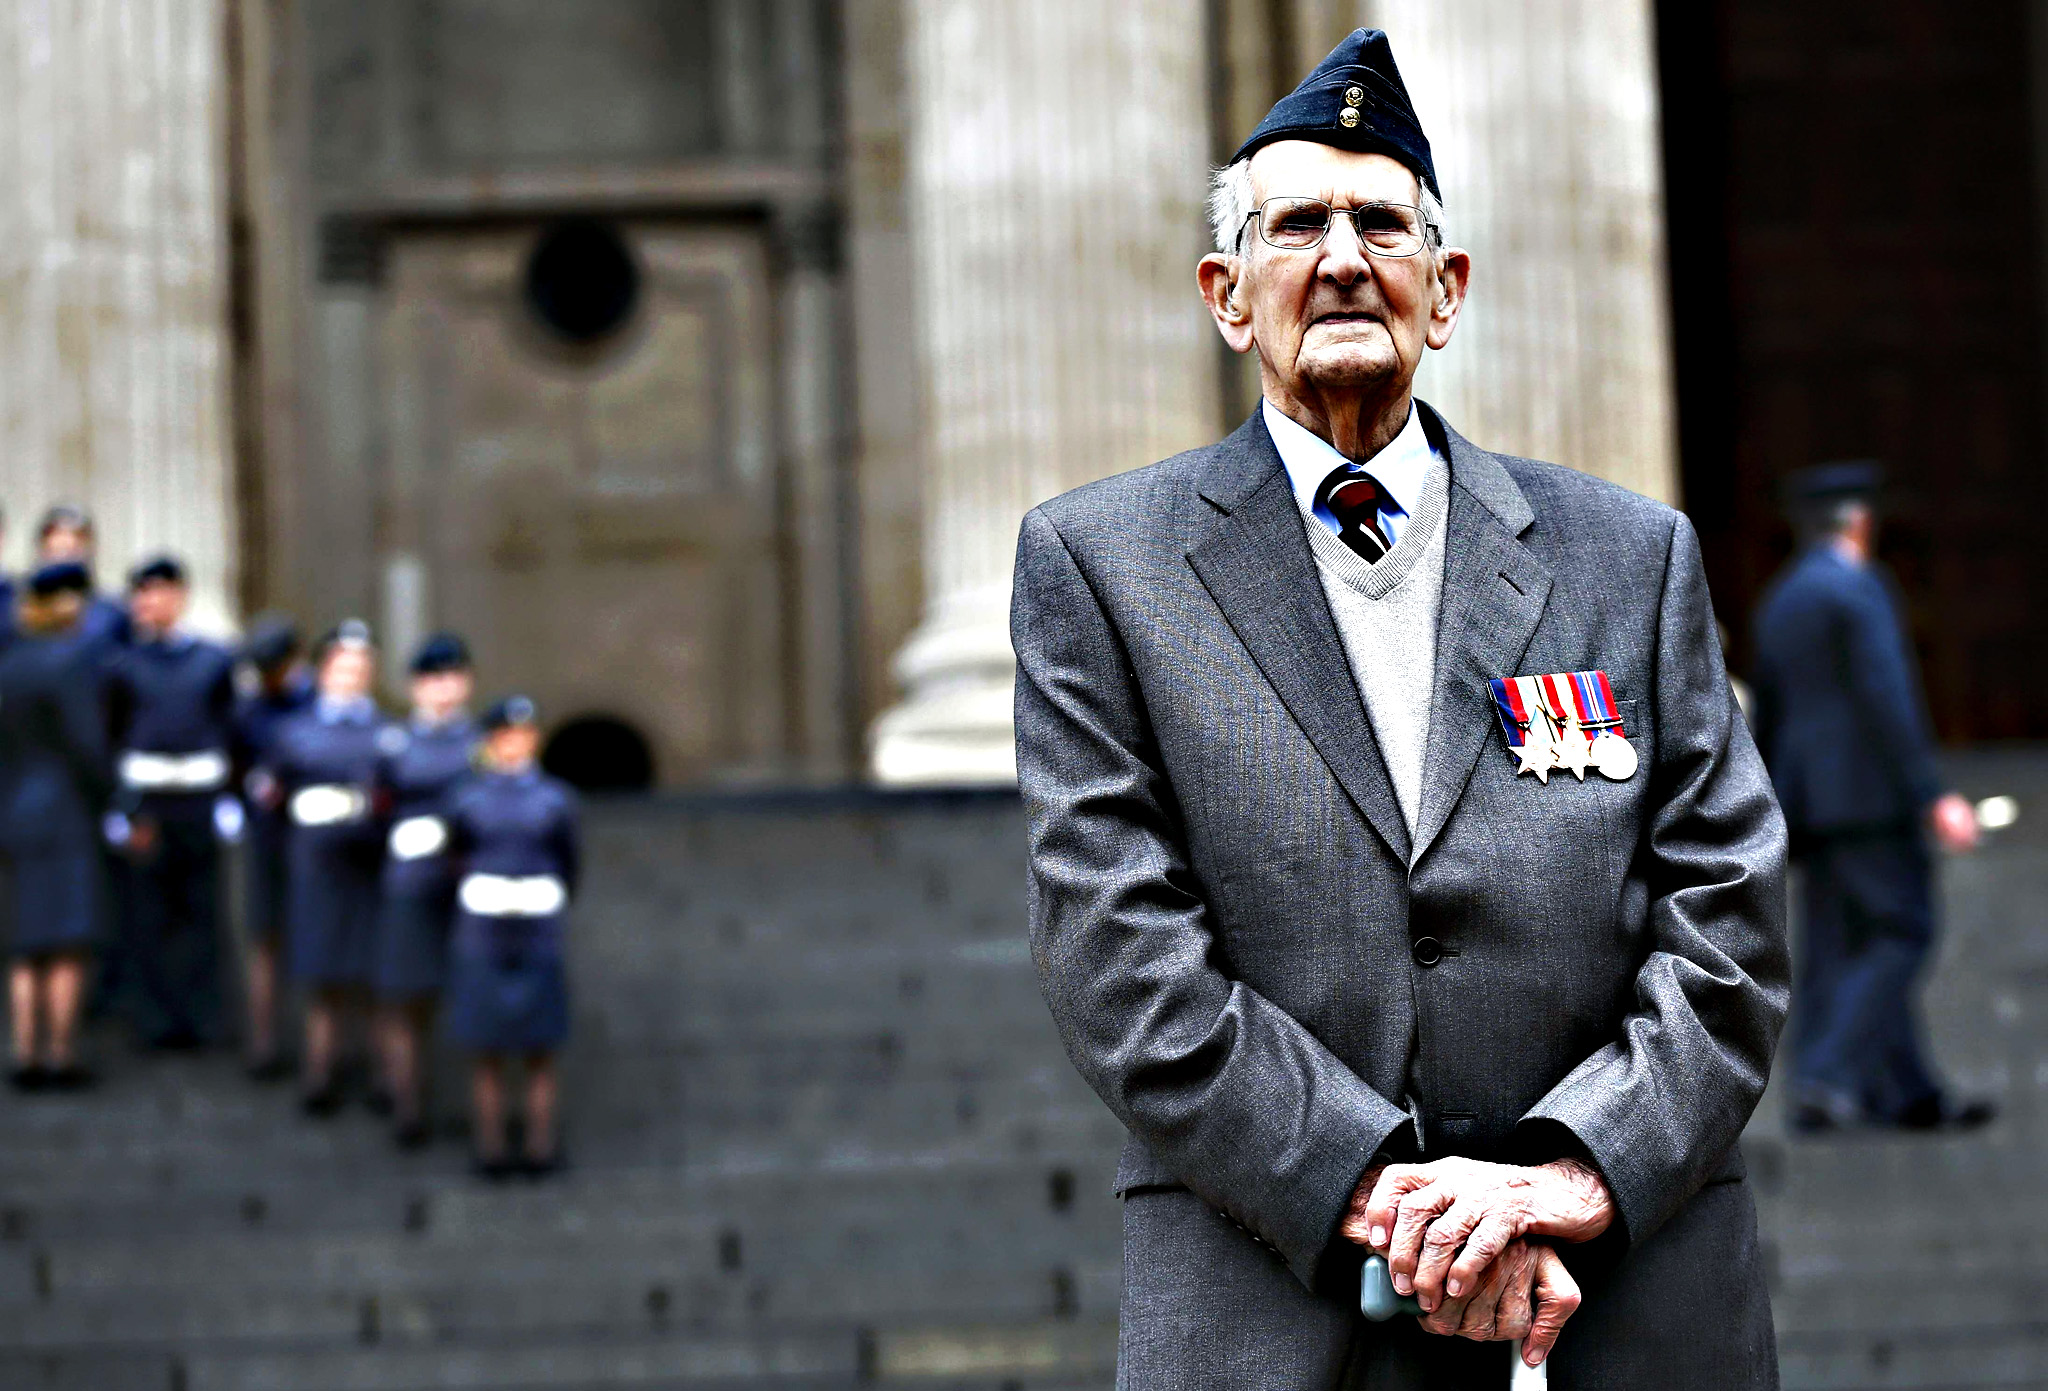 Veteran Clark, 95 poses for a photograph after receiving his campaign medals before a national service of commemoration to mark the 75th anniversary of the Battle of Britain at St Paul's Cathedral in central London...Veteran Will Clark, 95 poses for a photograph after receiving his campaign medals before a national service of commemoration to mark the 75th anniversary of the Battle of Britain at St Paul's Cathedral in central London, Britain September 15, 2015.